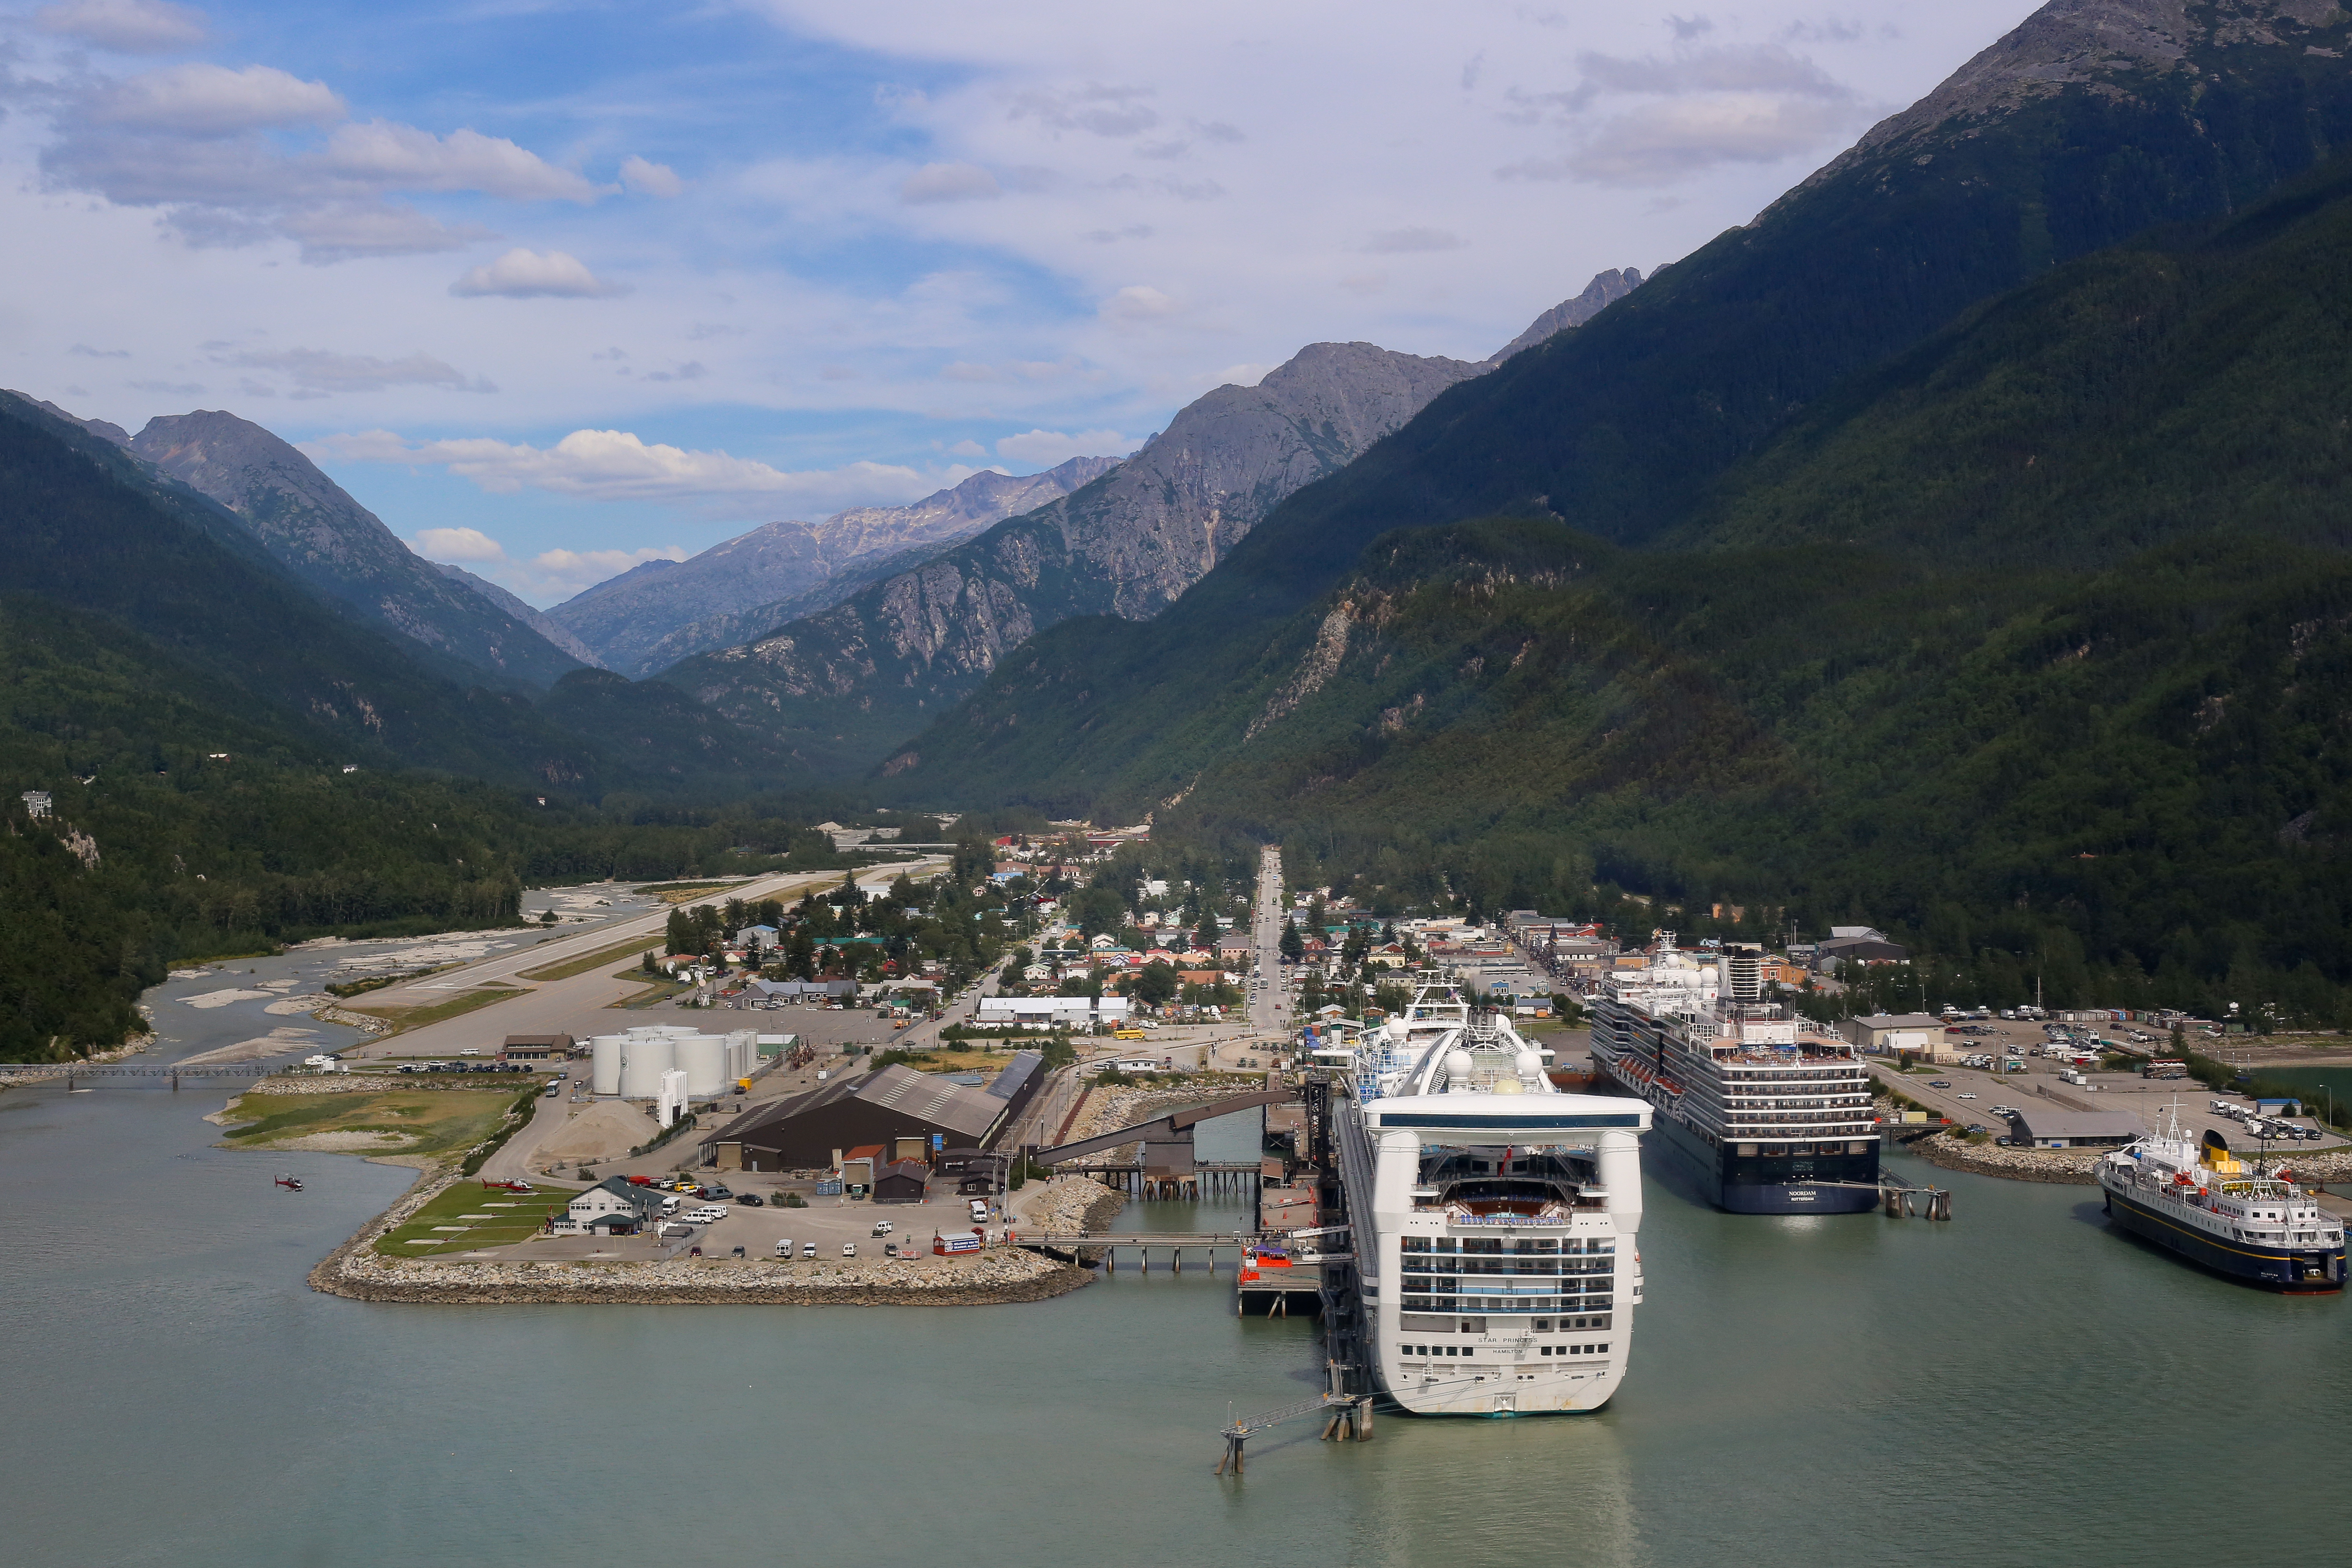 Skagway, as it appeared from the air, in 2015.